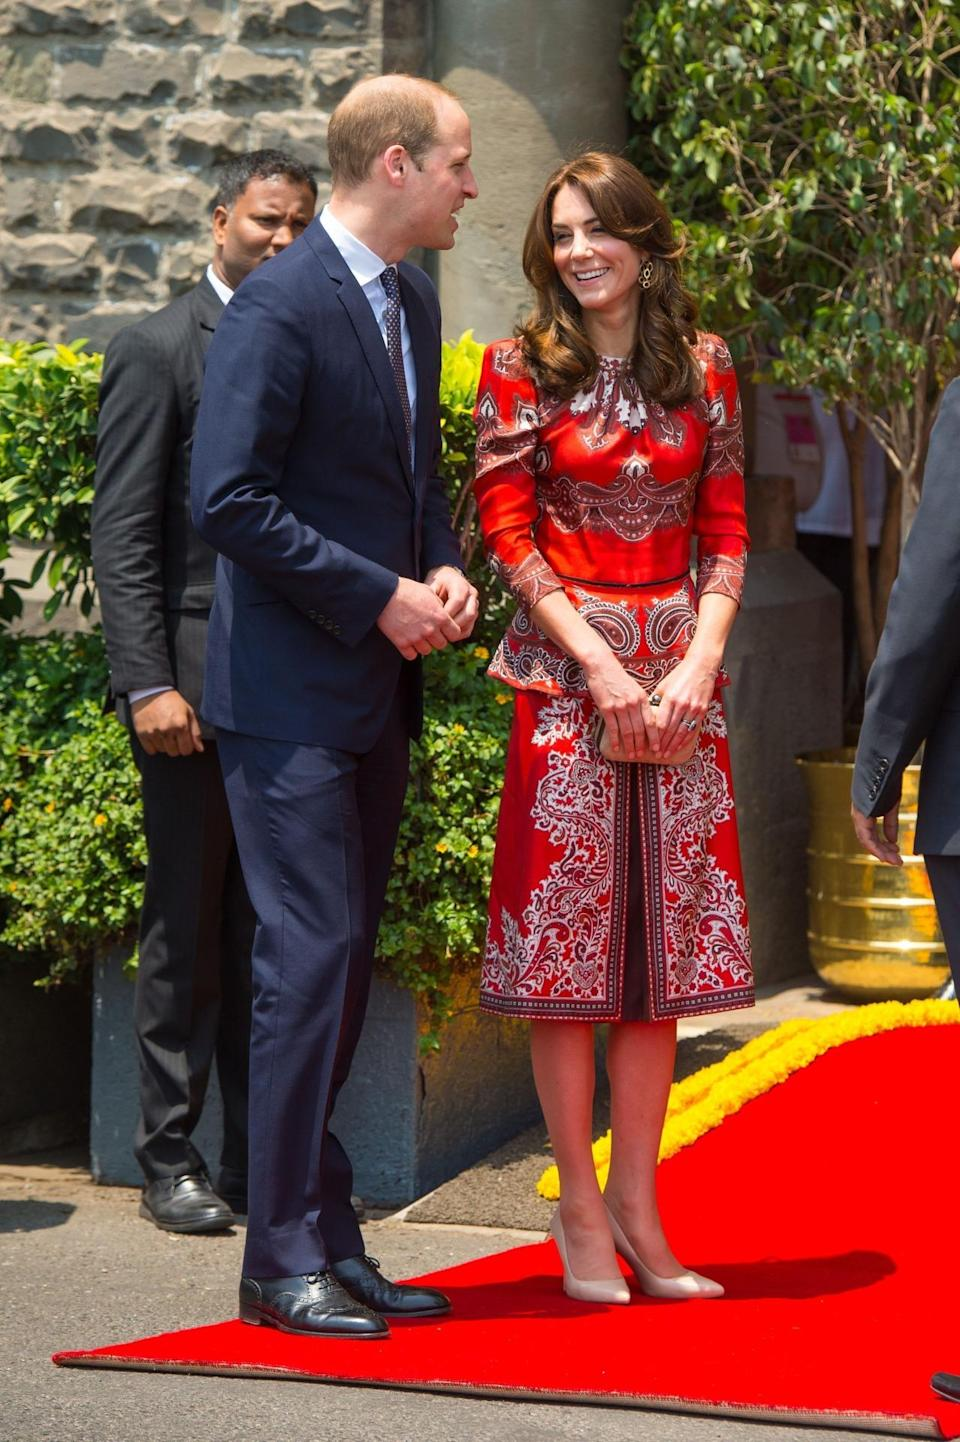 <p>For the launch of the royal tour to India, Kate chose a bespoke Alexander McQueen suit featuring a peplum top and oriental print. L.K. Bennett heels and a suede clutch by Russell and Bromley complemented the ensemble. </p><p><i>[Photo: PA]</i></p>